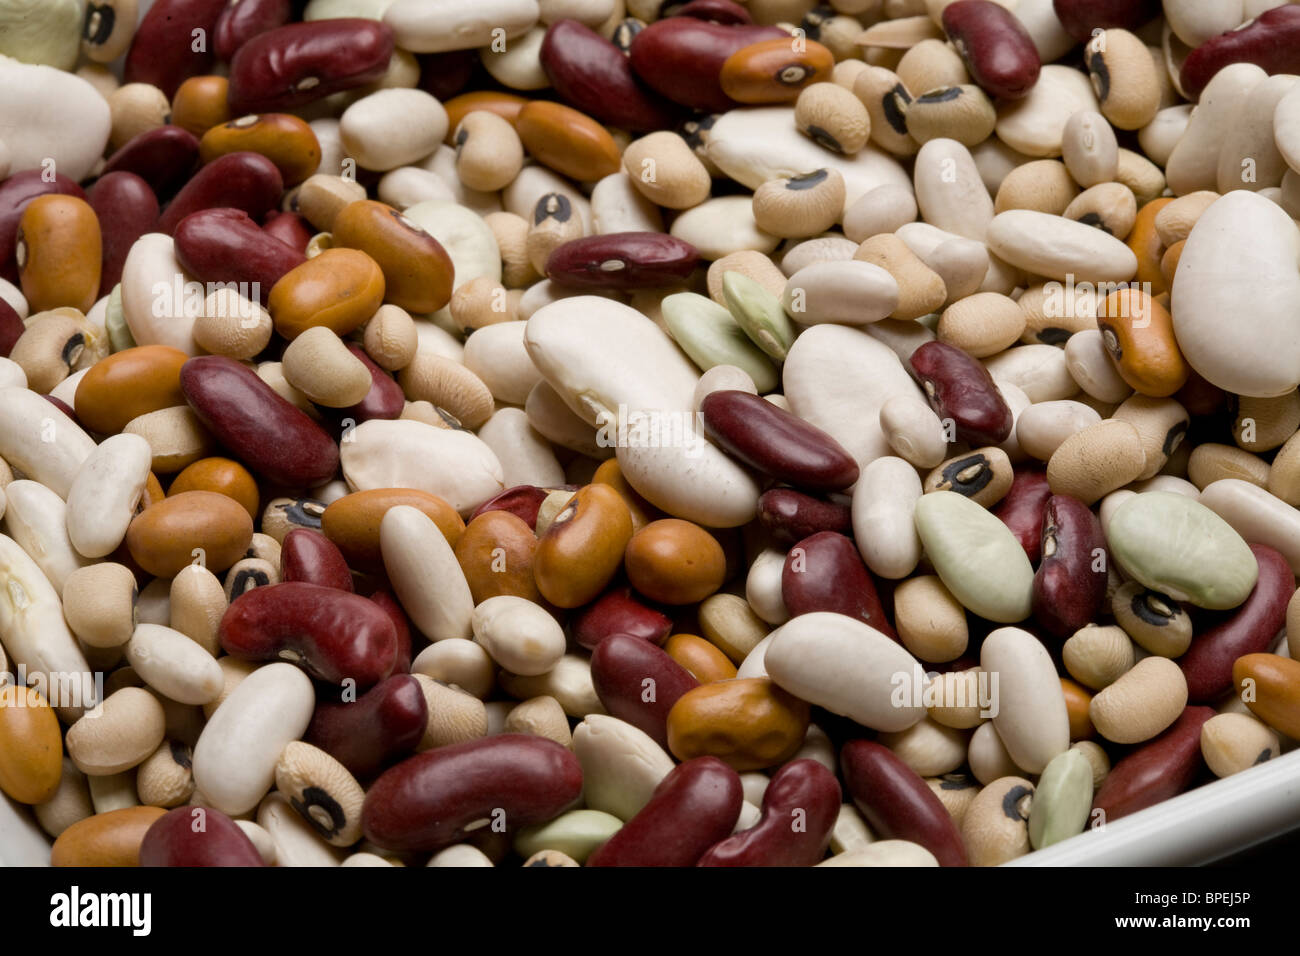 Black Eyed Beans Alubia Beans Red Kidney Beans Dutch Brown Beans Baby Stock Photo Alamy